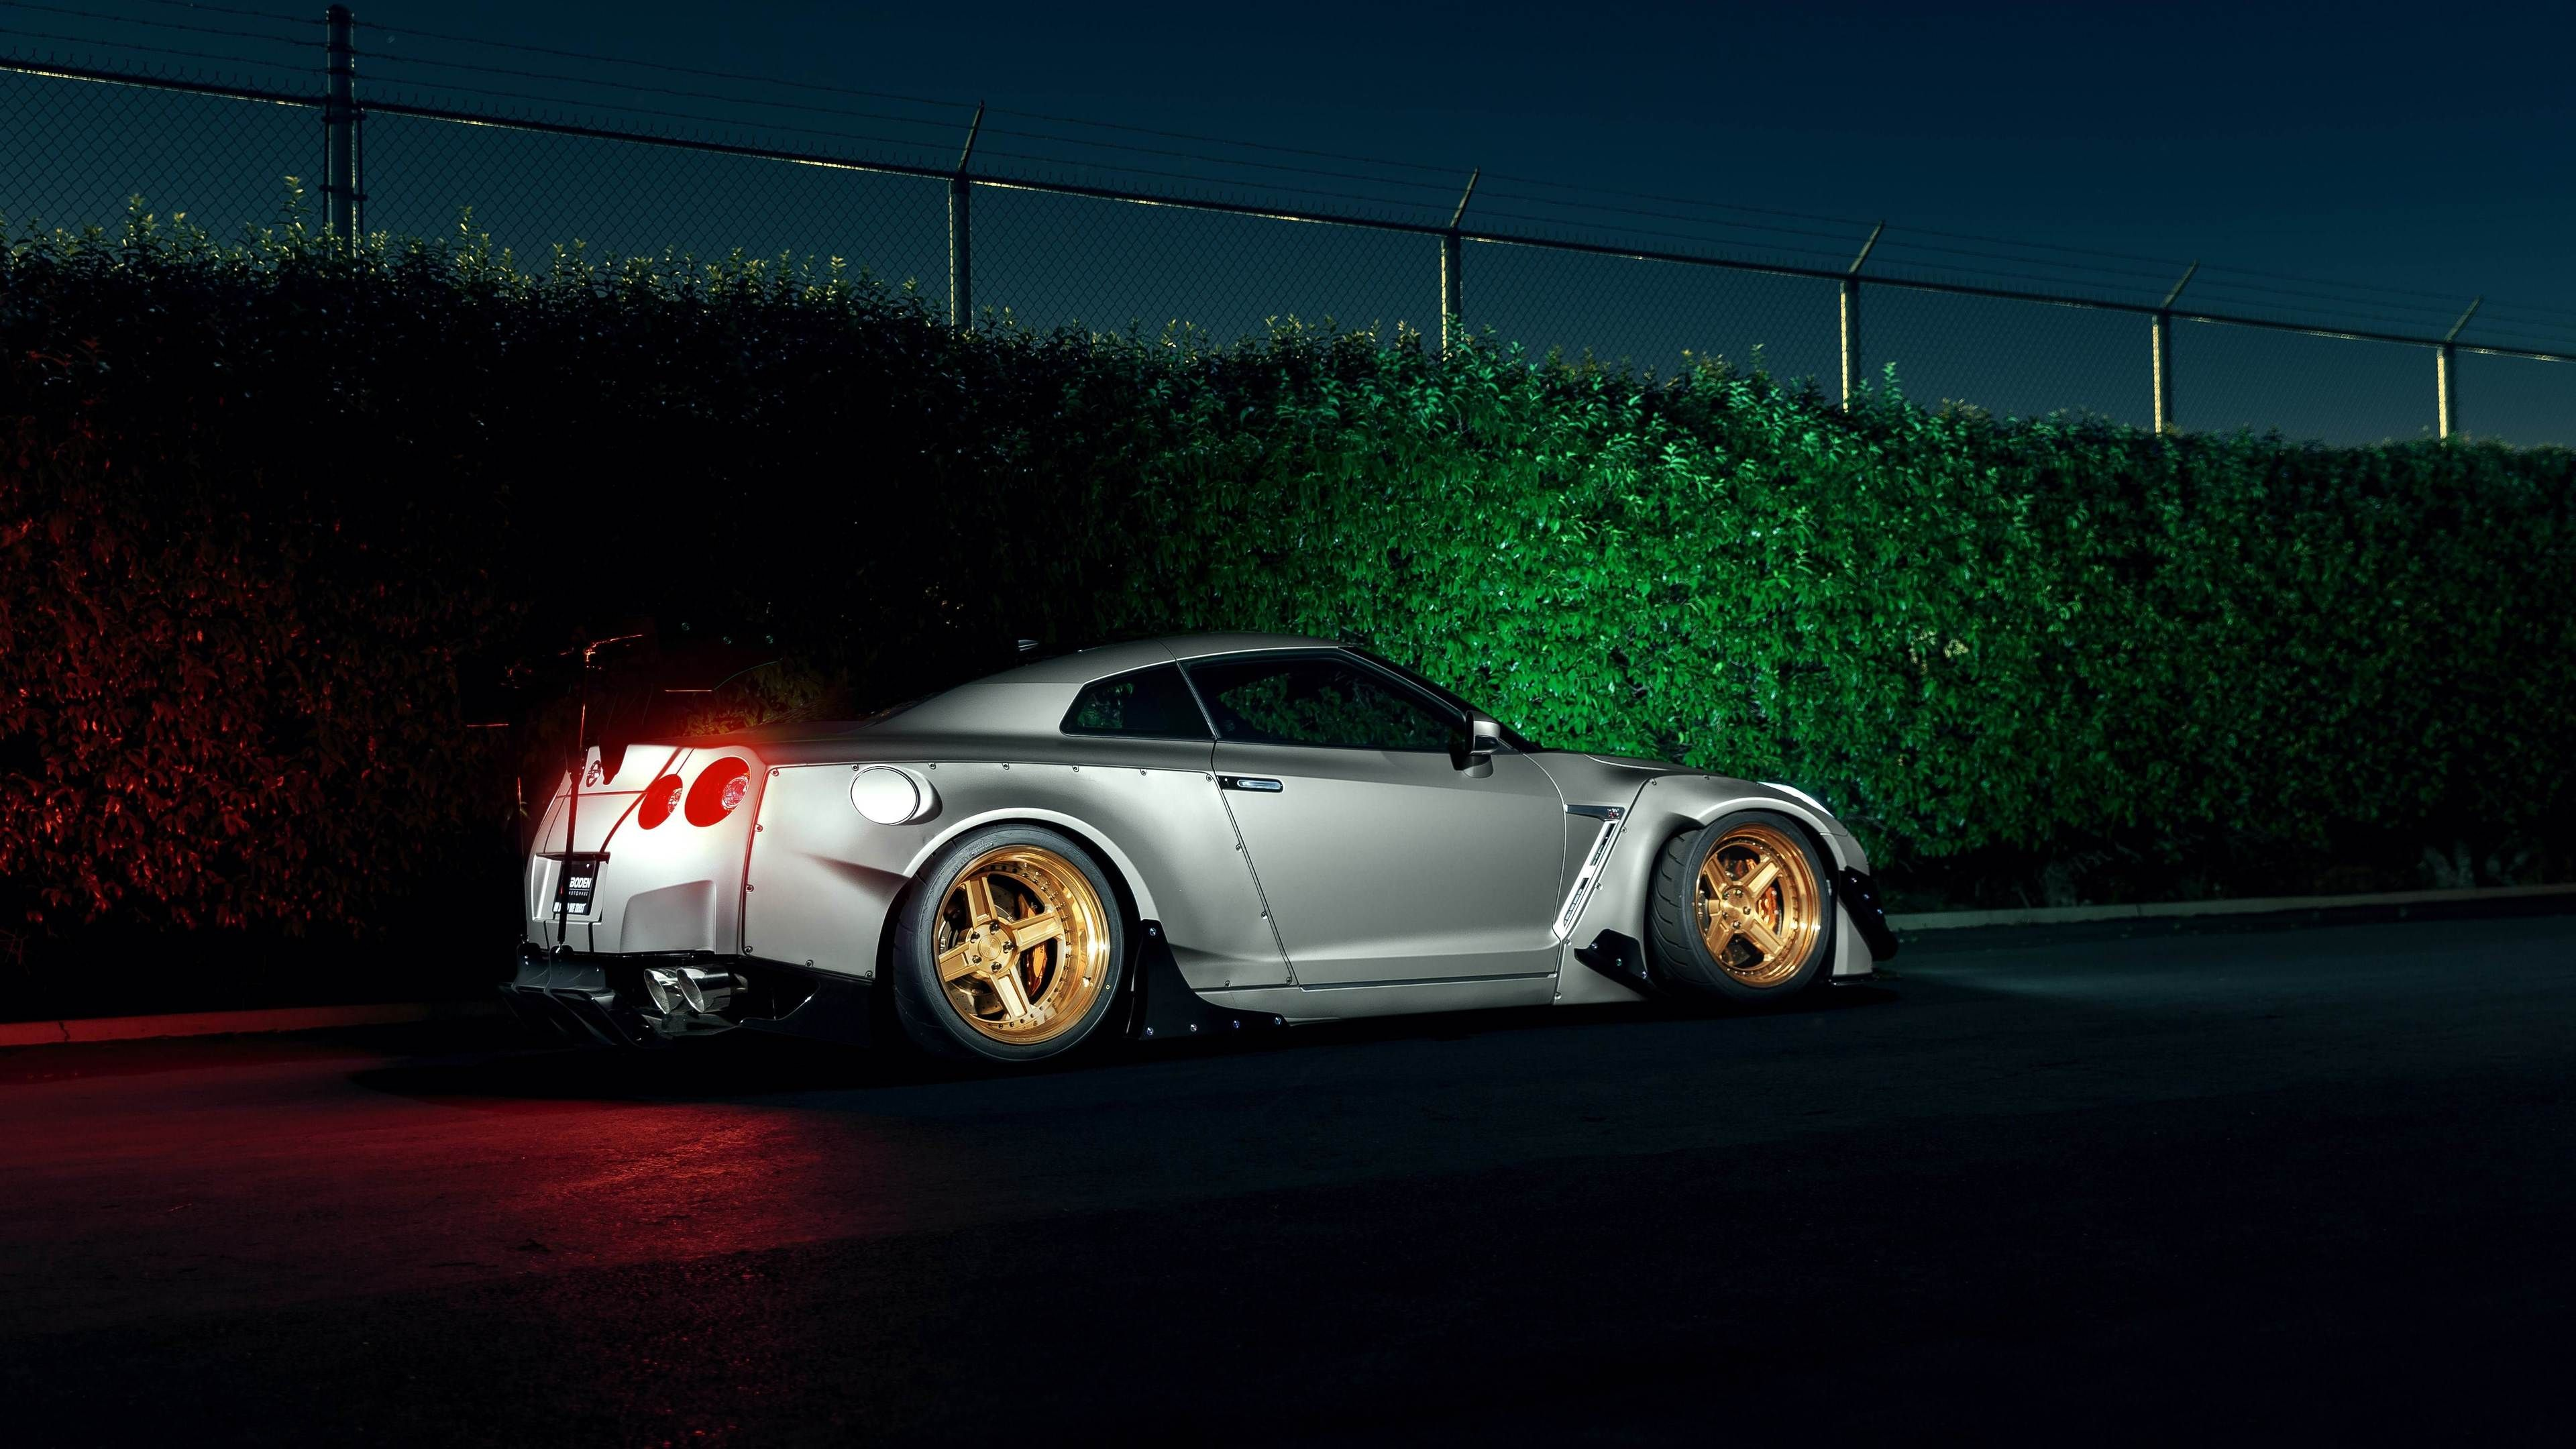 Nissan Gt R Nissan Wallpapers Nissan Gtr Wallpapers Cars